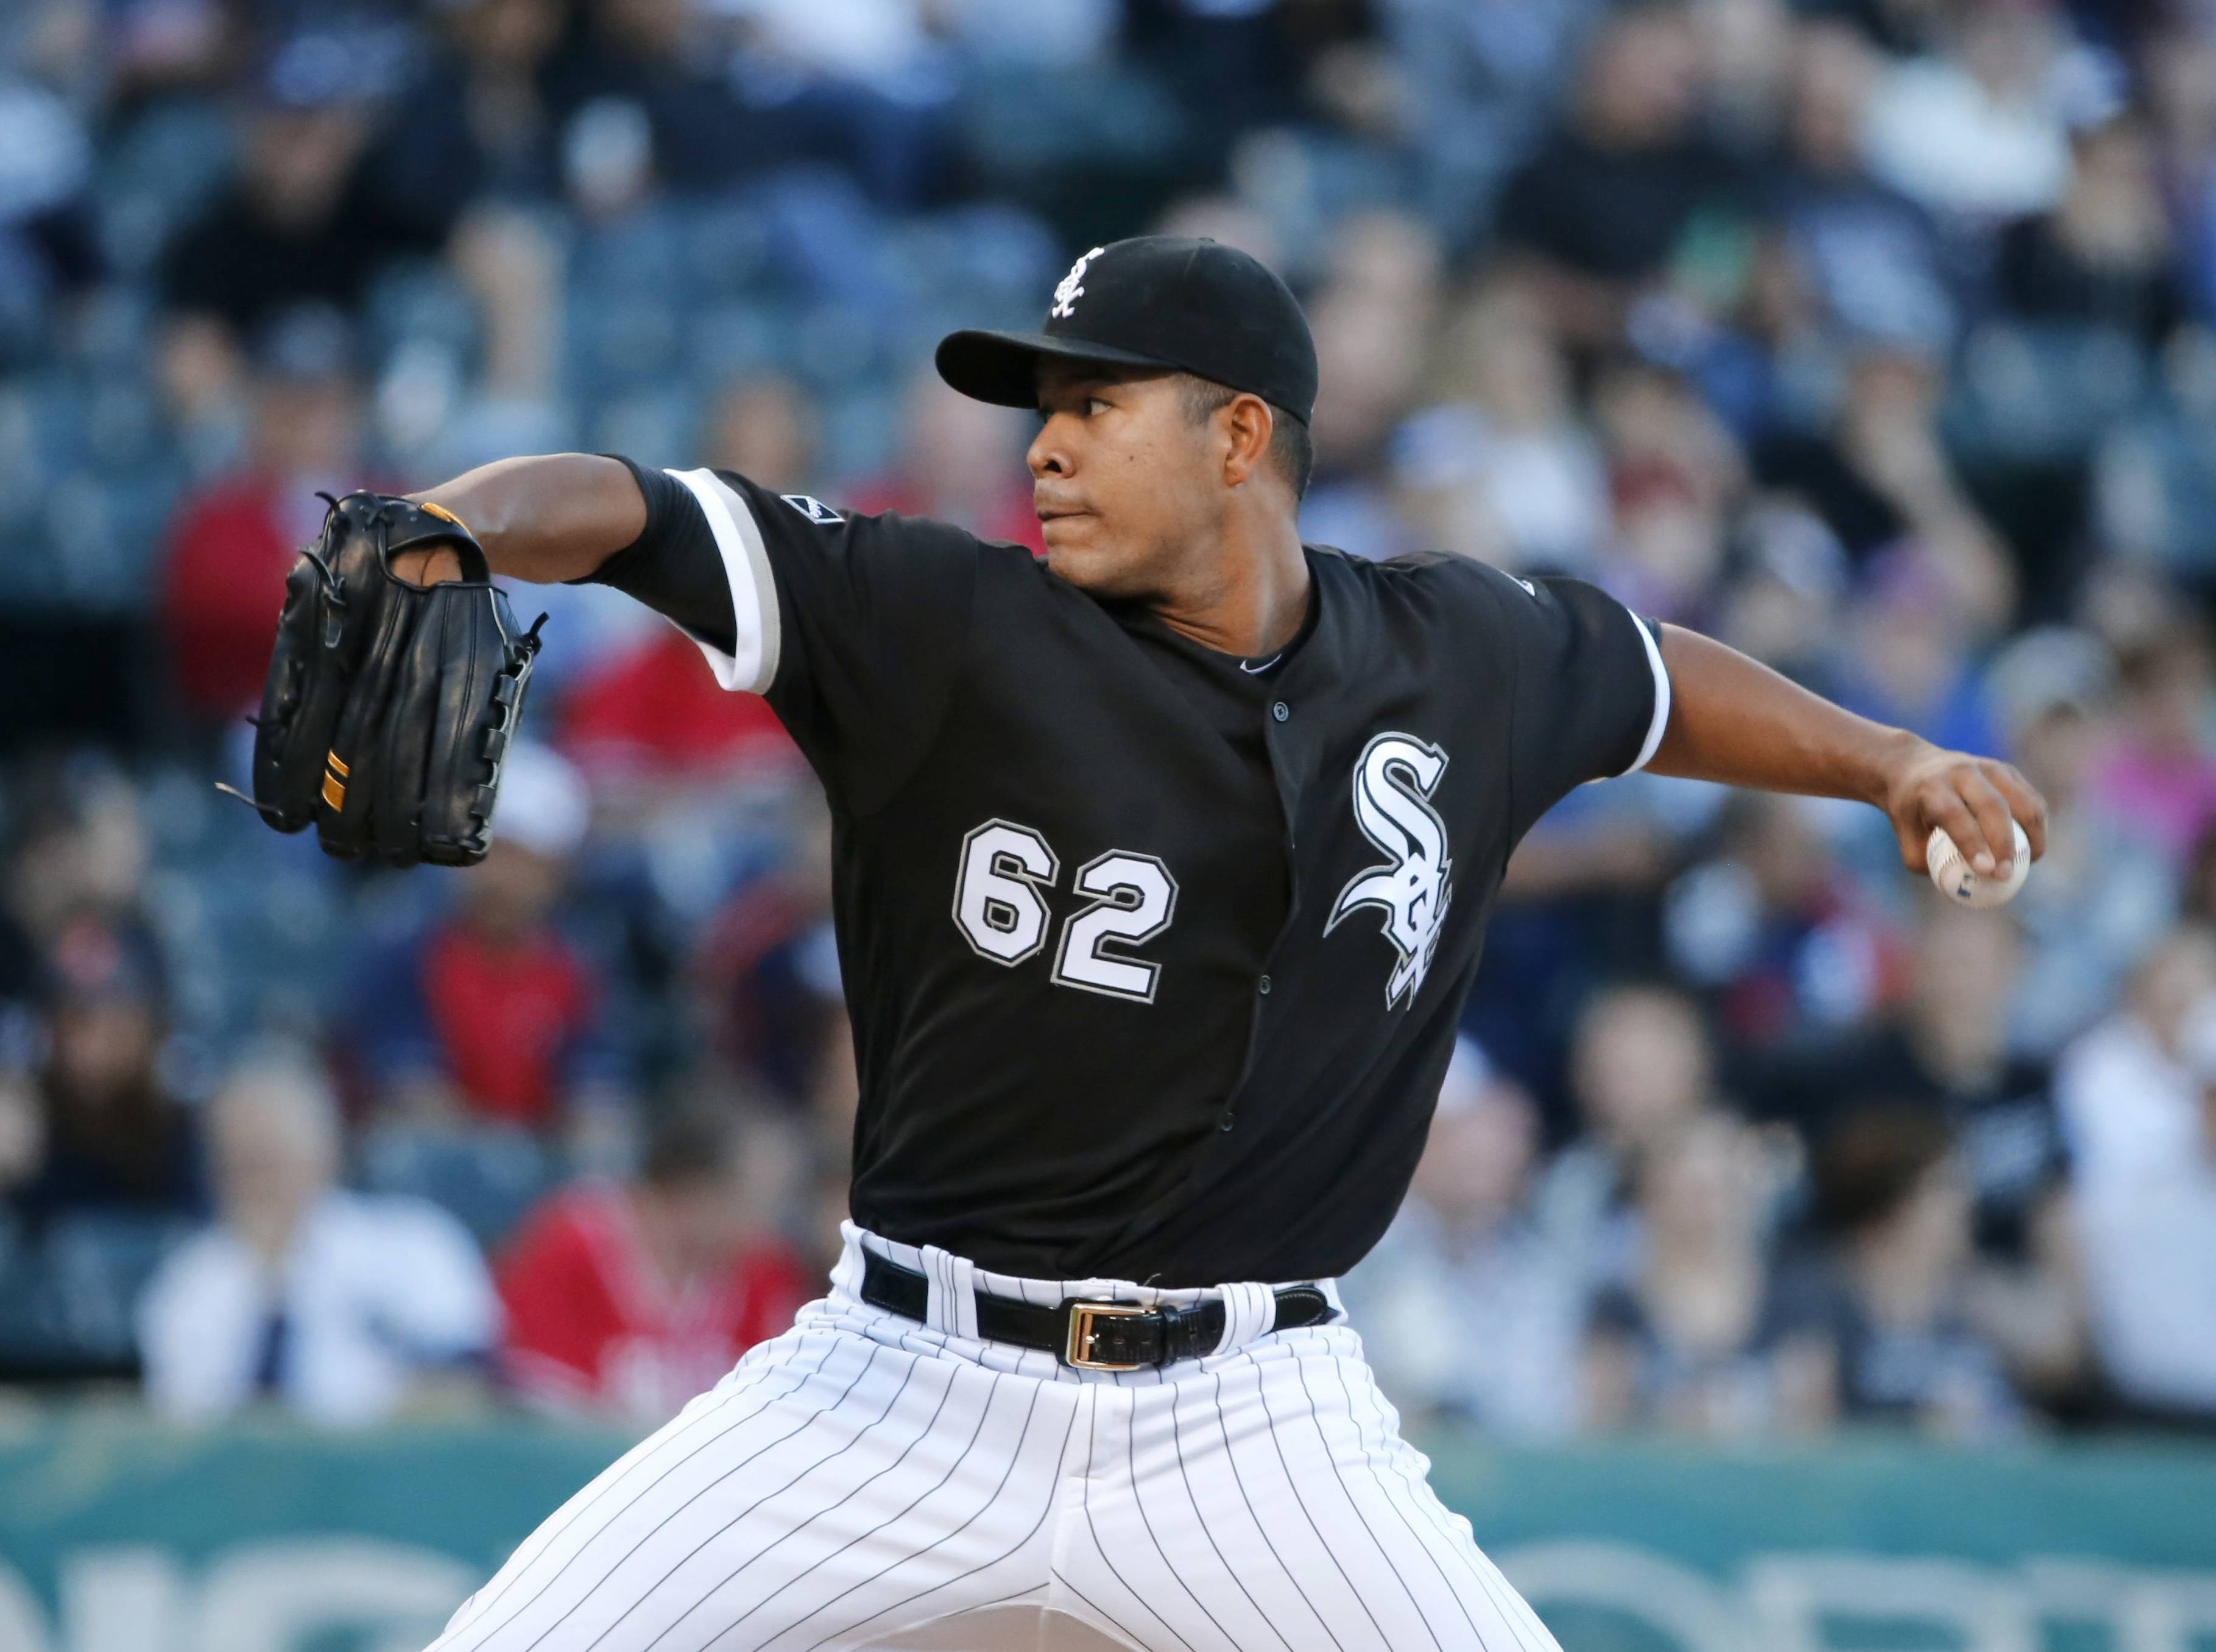 Starting pitcher Jose Quintana had another tough night Tuesday as the Chicago White Sox lost to the Minnesota Twins 4-0 at U.S. Cellular Field.